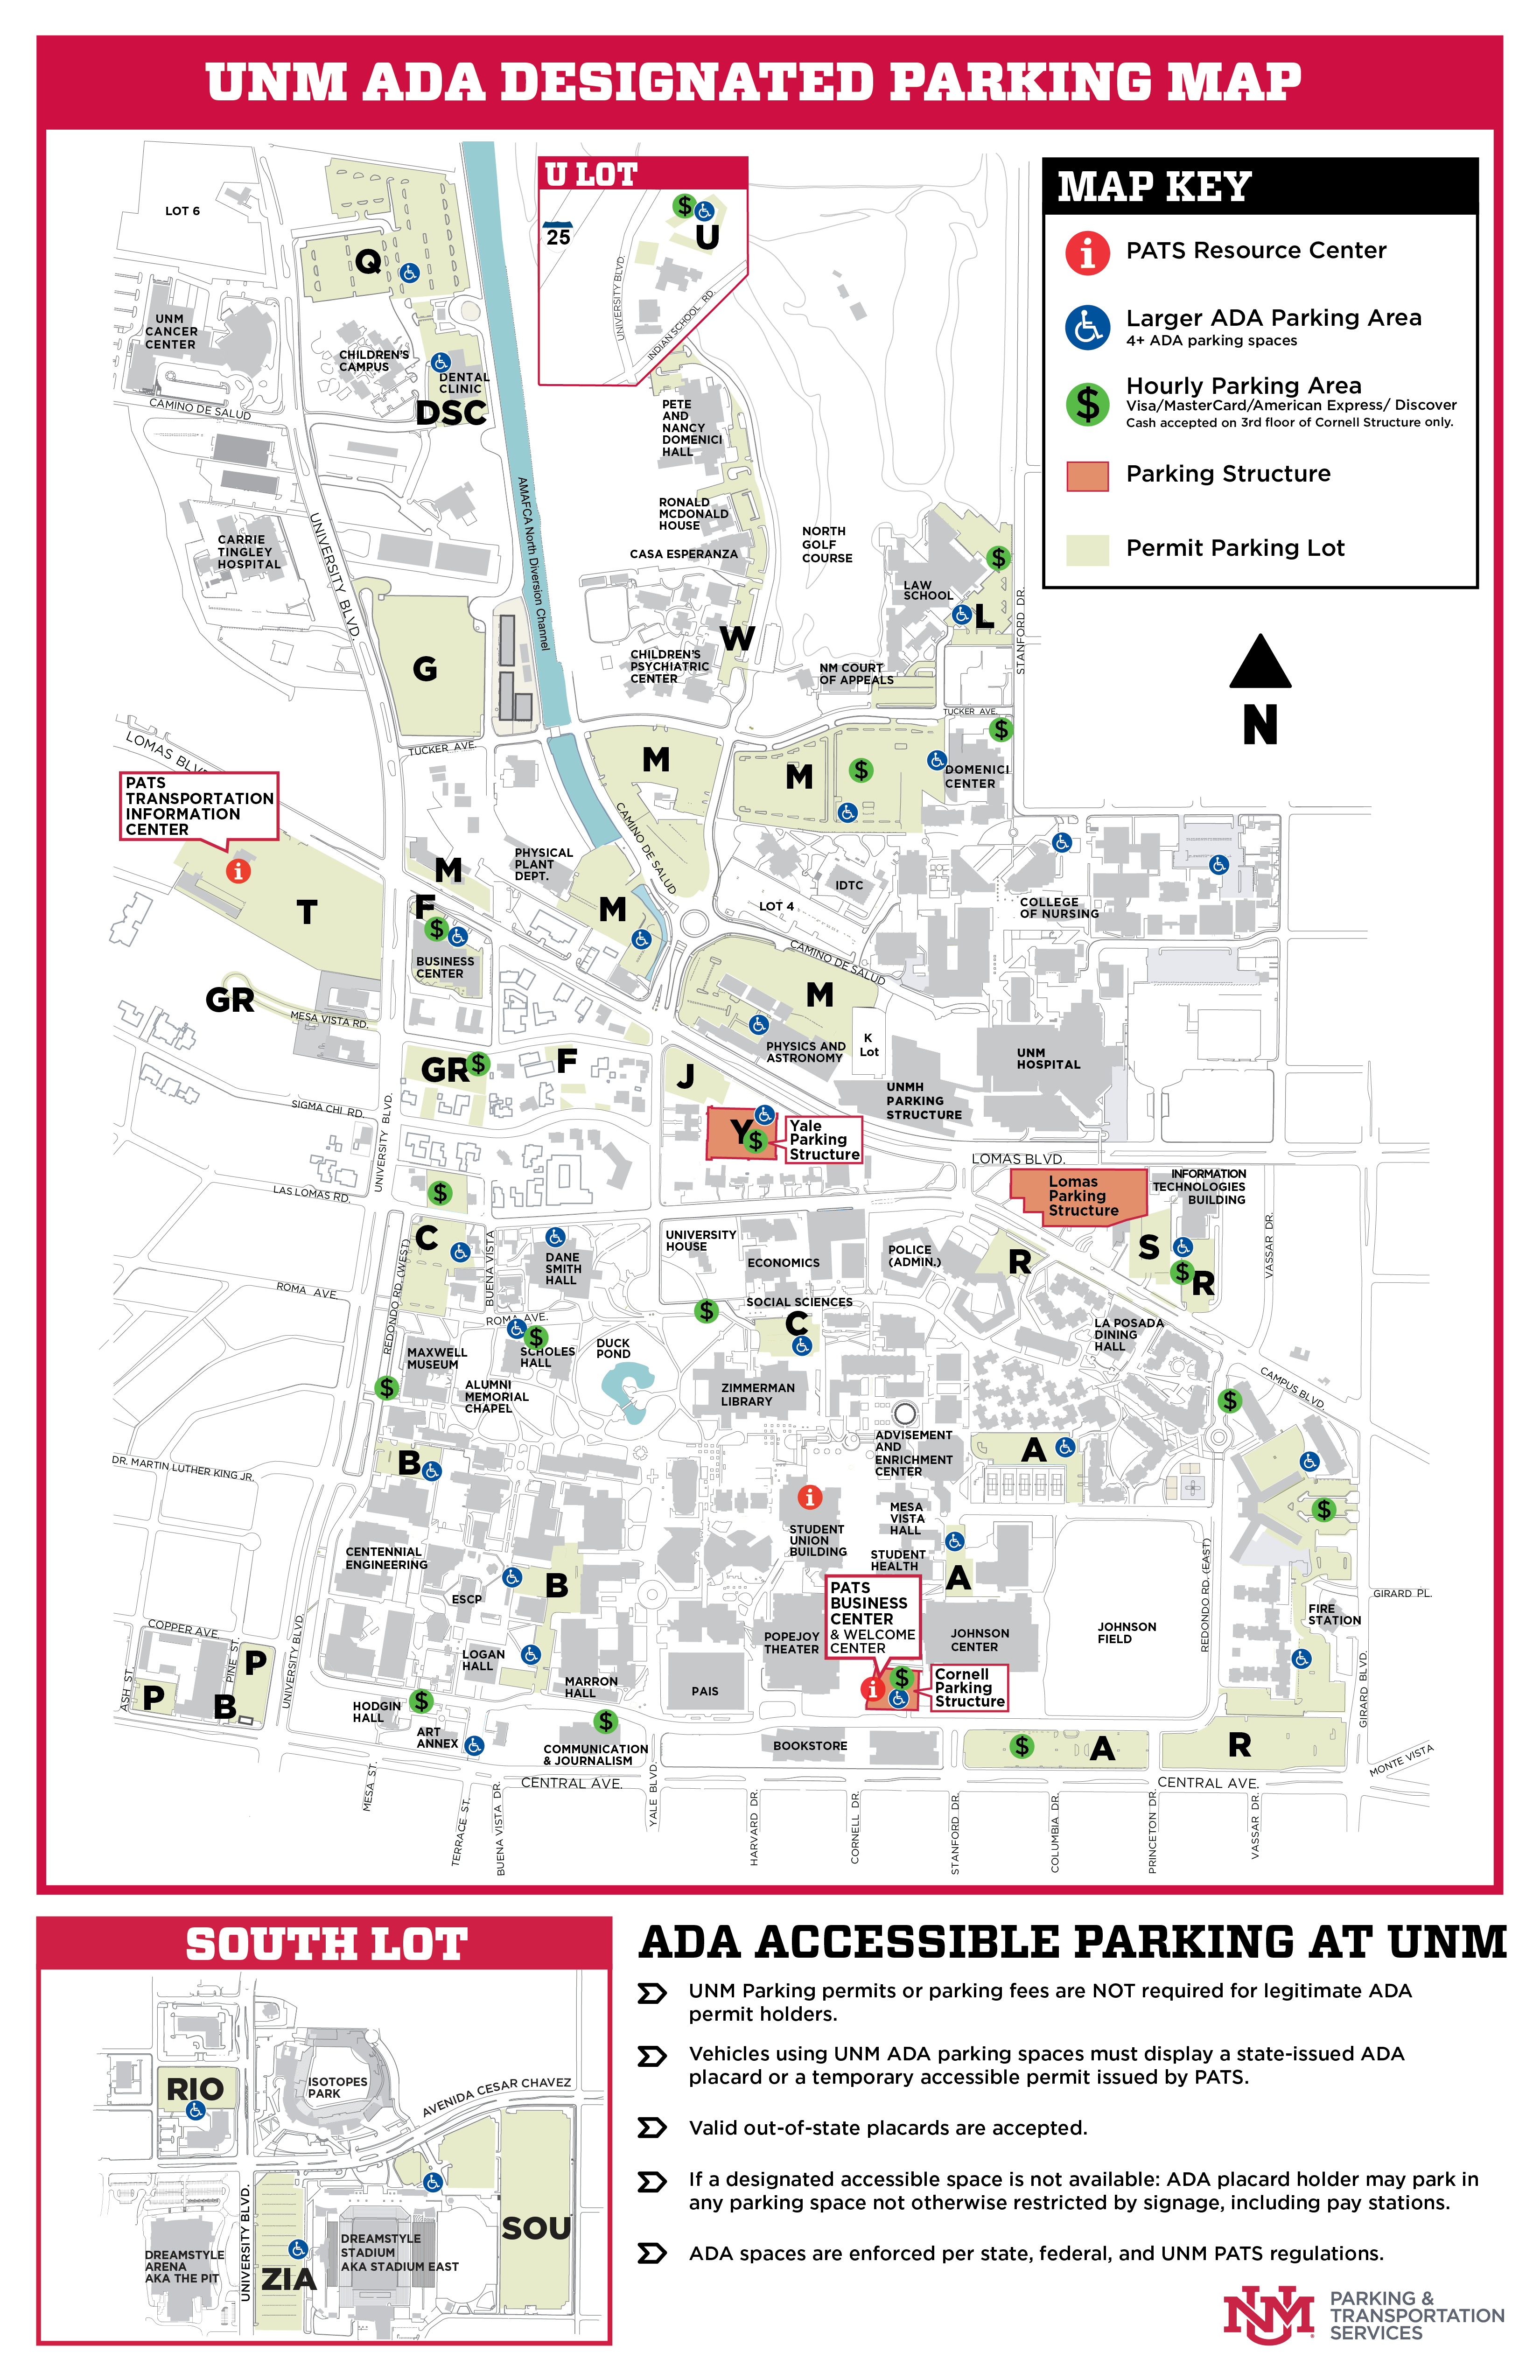 Unm Parking Map Accessible Parking :: Parking & Transportation Services | The  Unm Parking Map